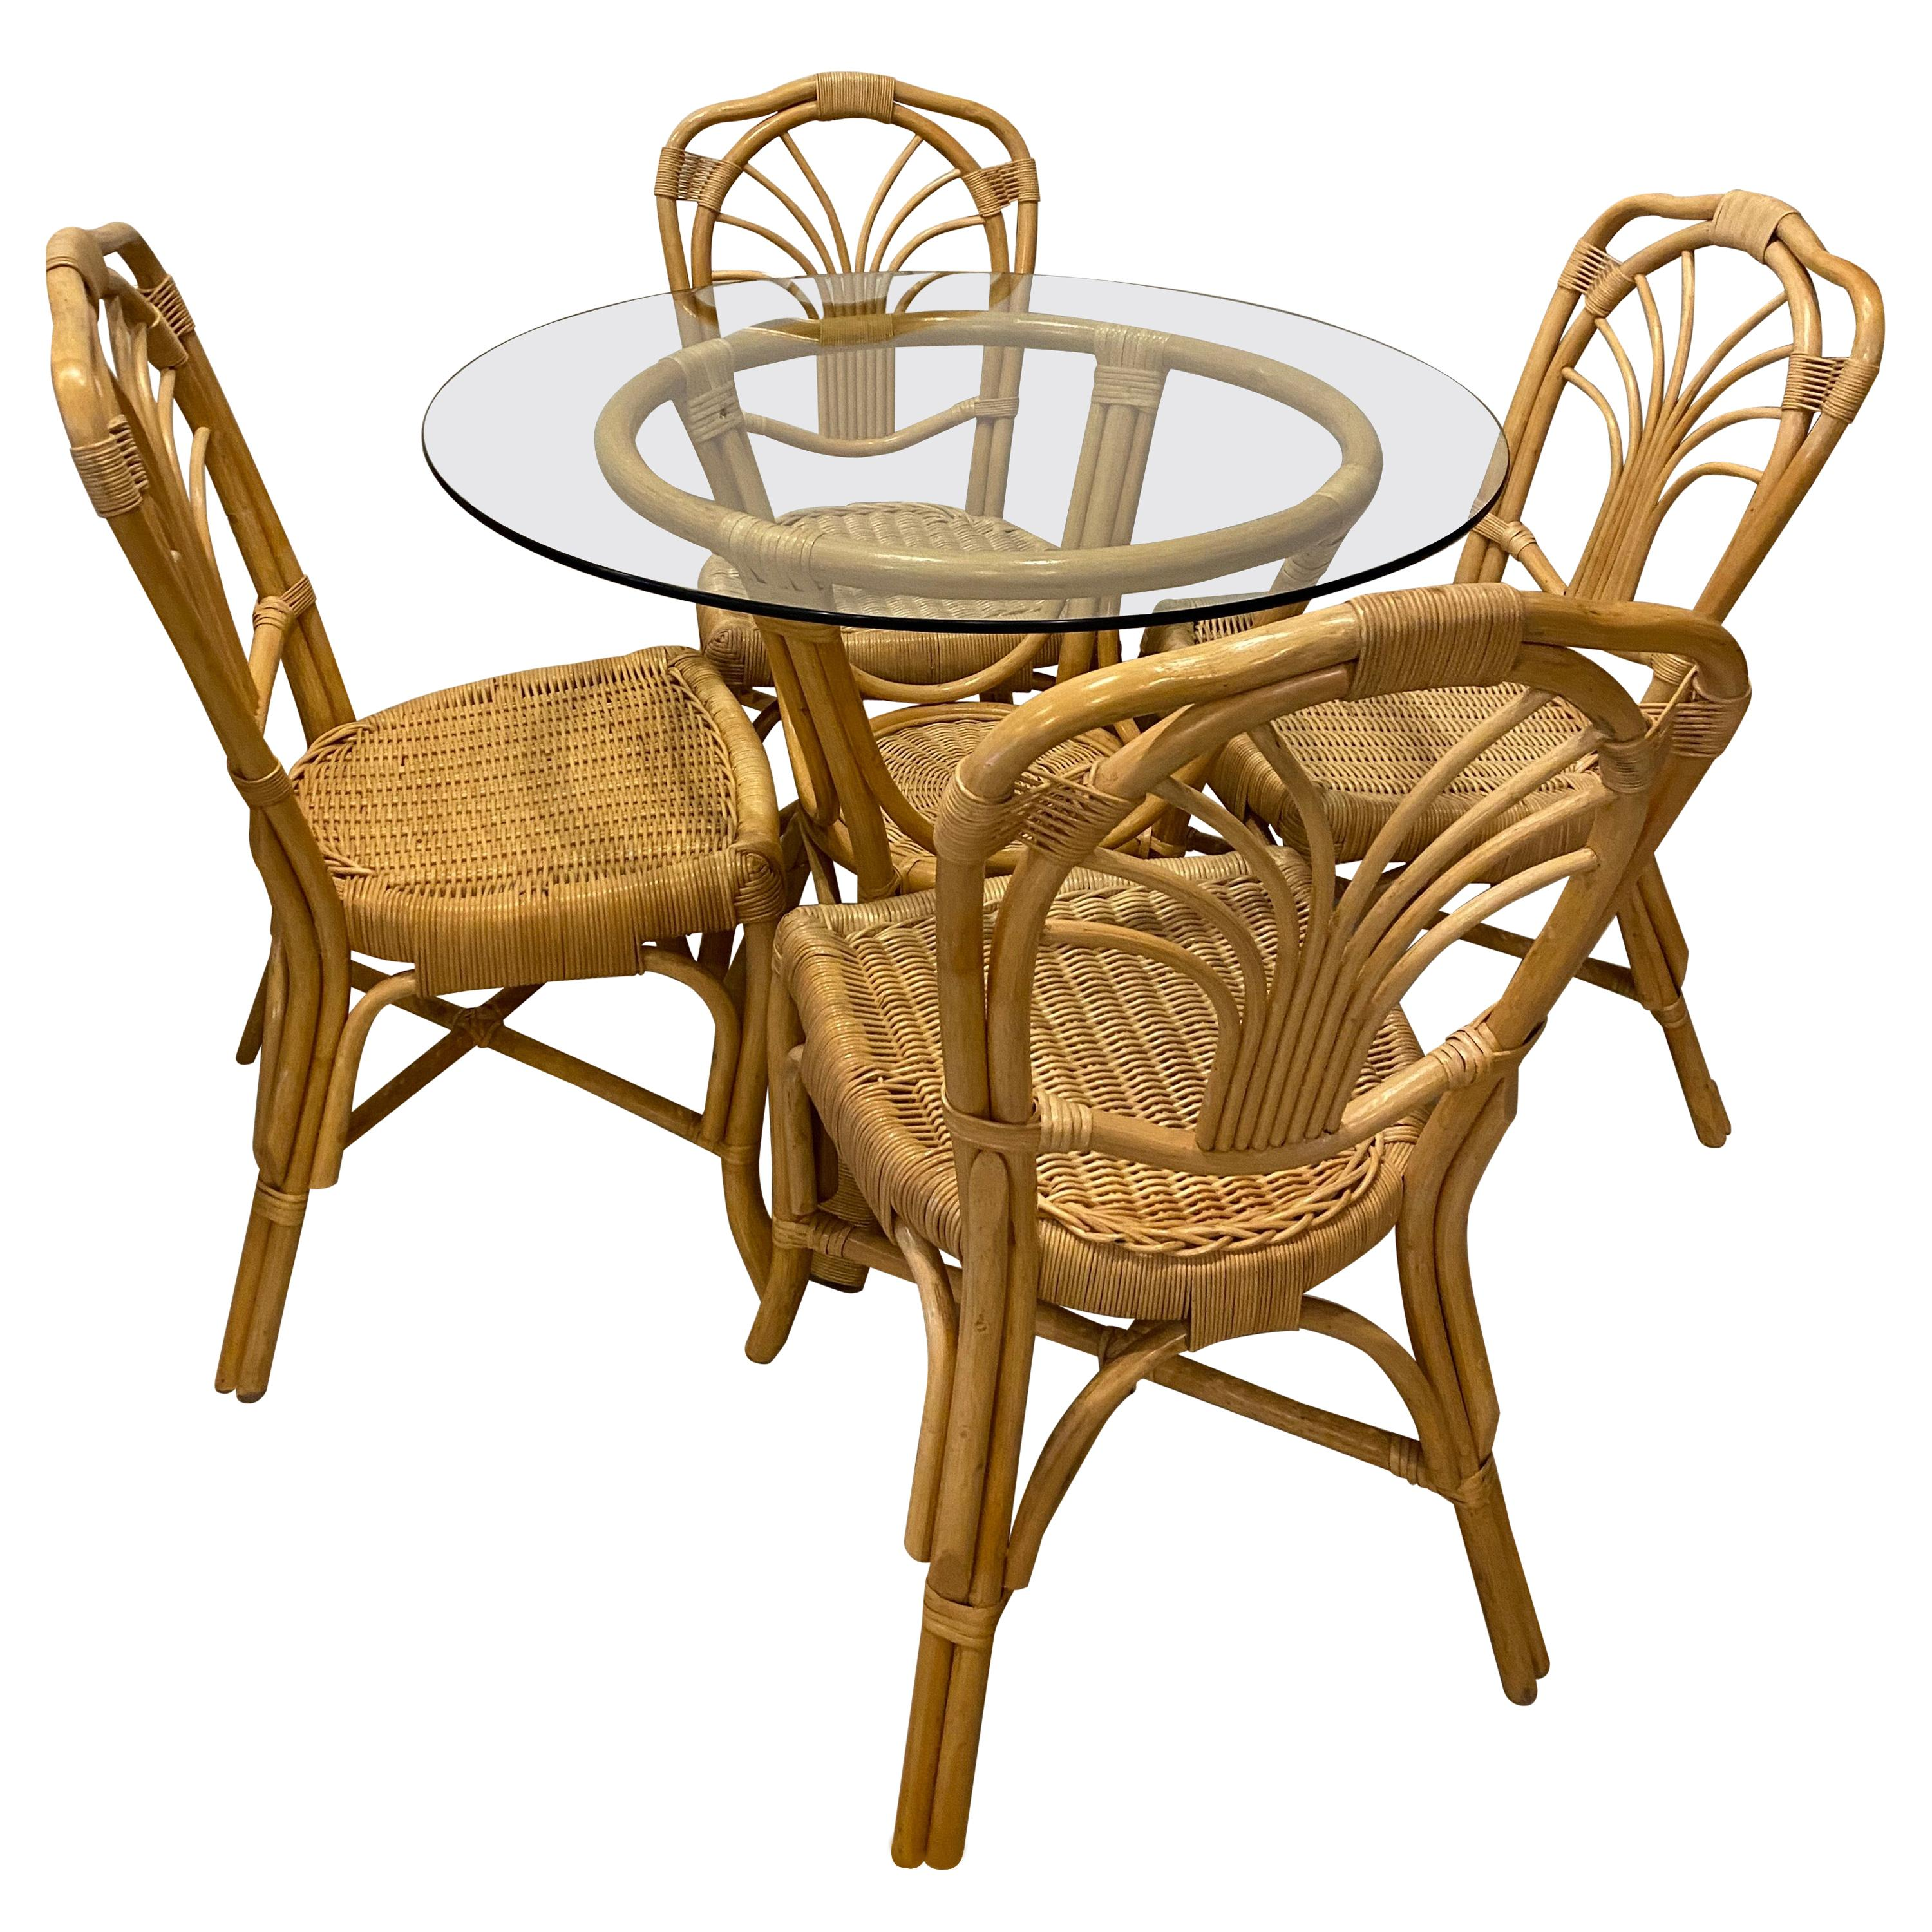 Vintage 5 Piece Rattan & Wicker Dining Set Table & Chairs Dinette